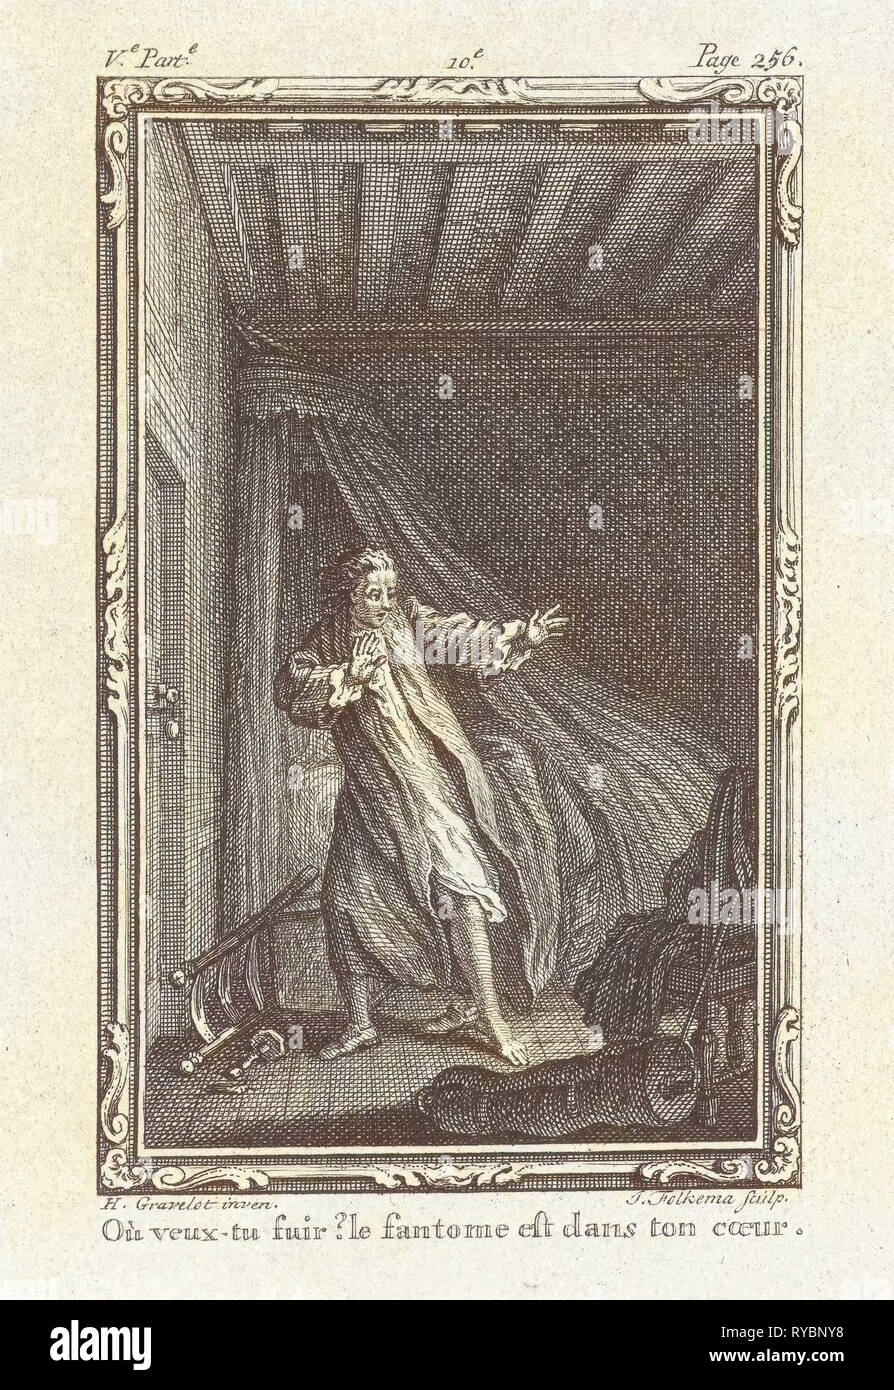 Frightened man in a bedroom, Jacob Folkema, 1761 - Stock Image